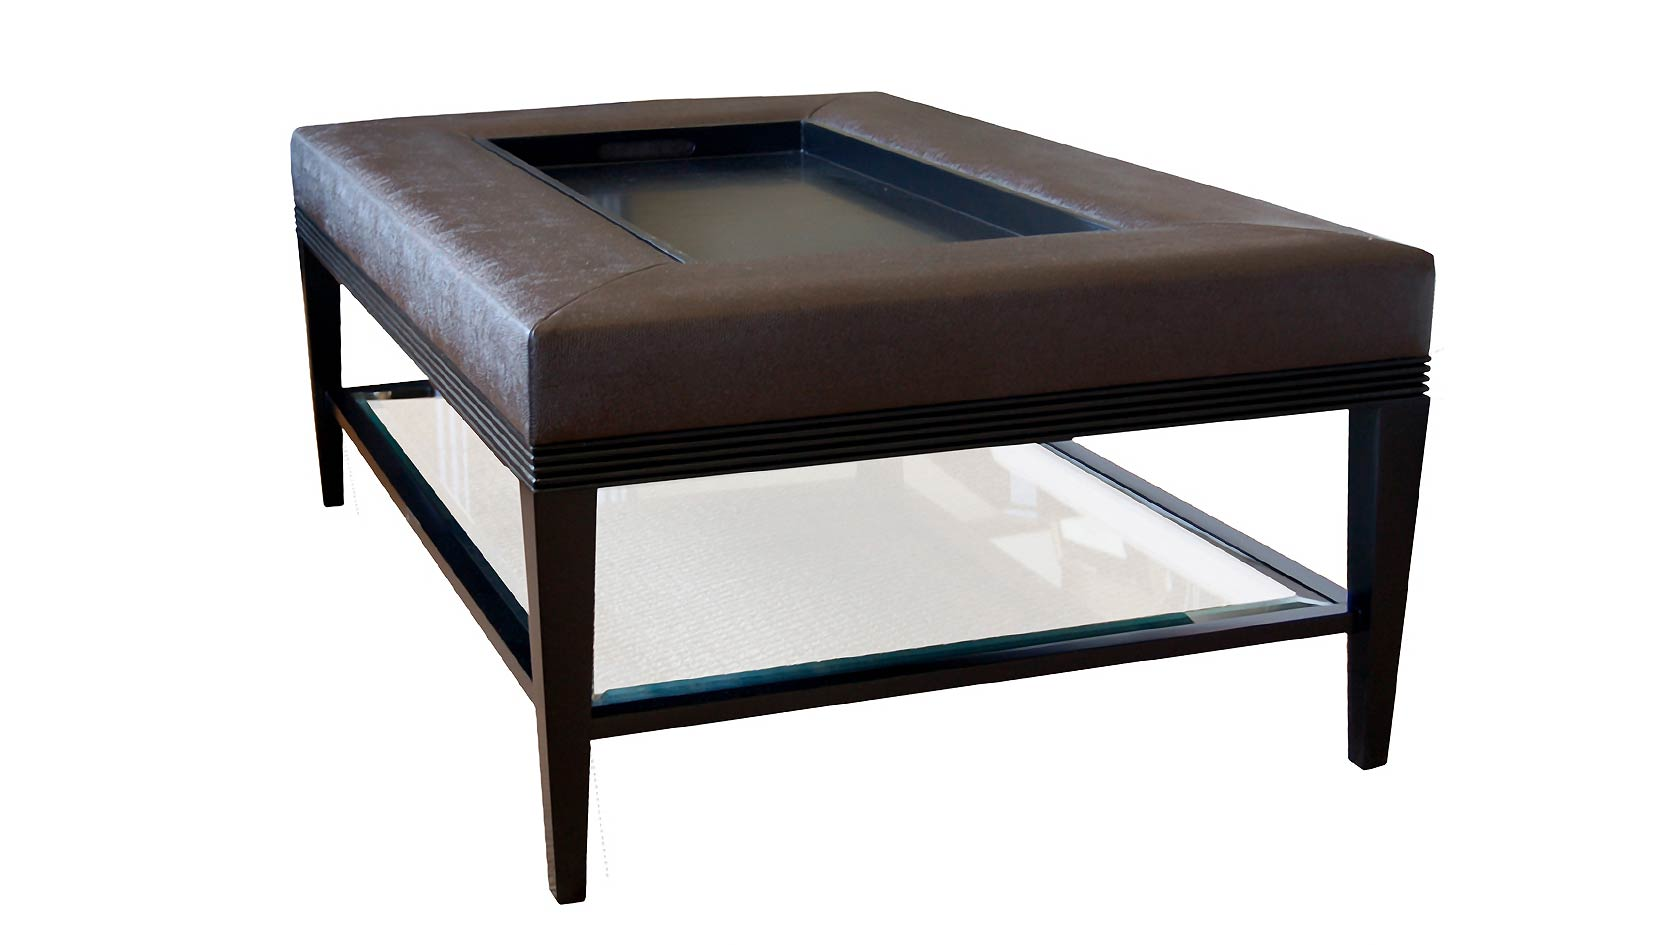 Dual Purpose Luxury Coffee Table And Ottoman Featuring A Reeded